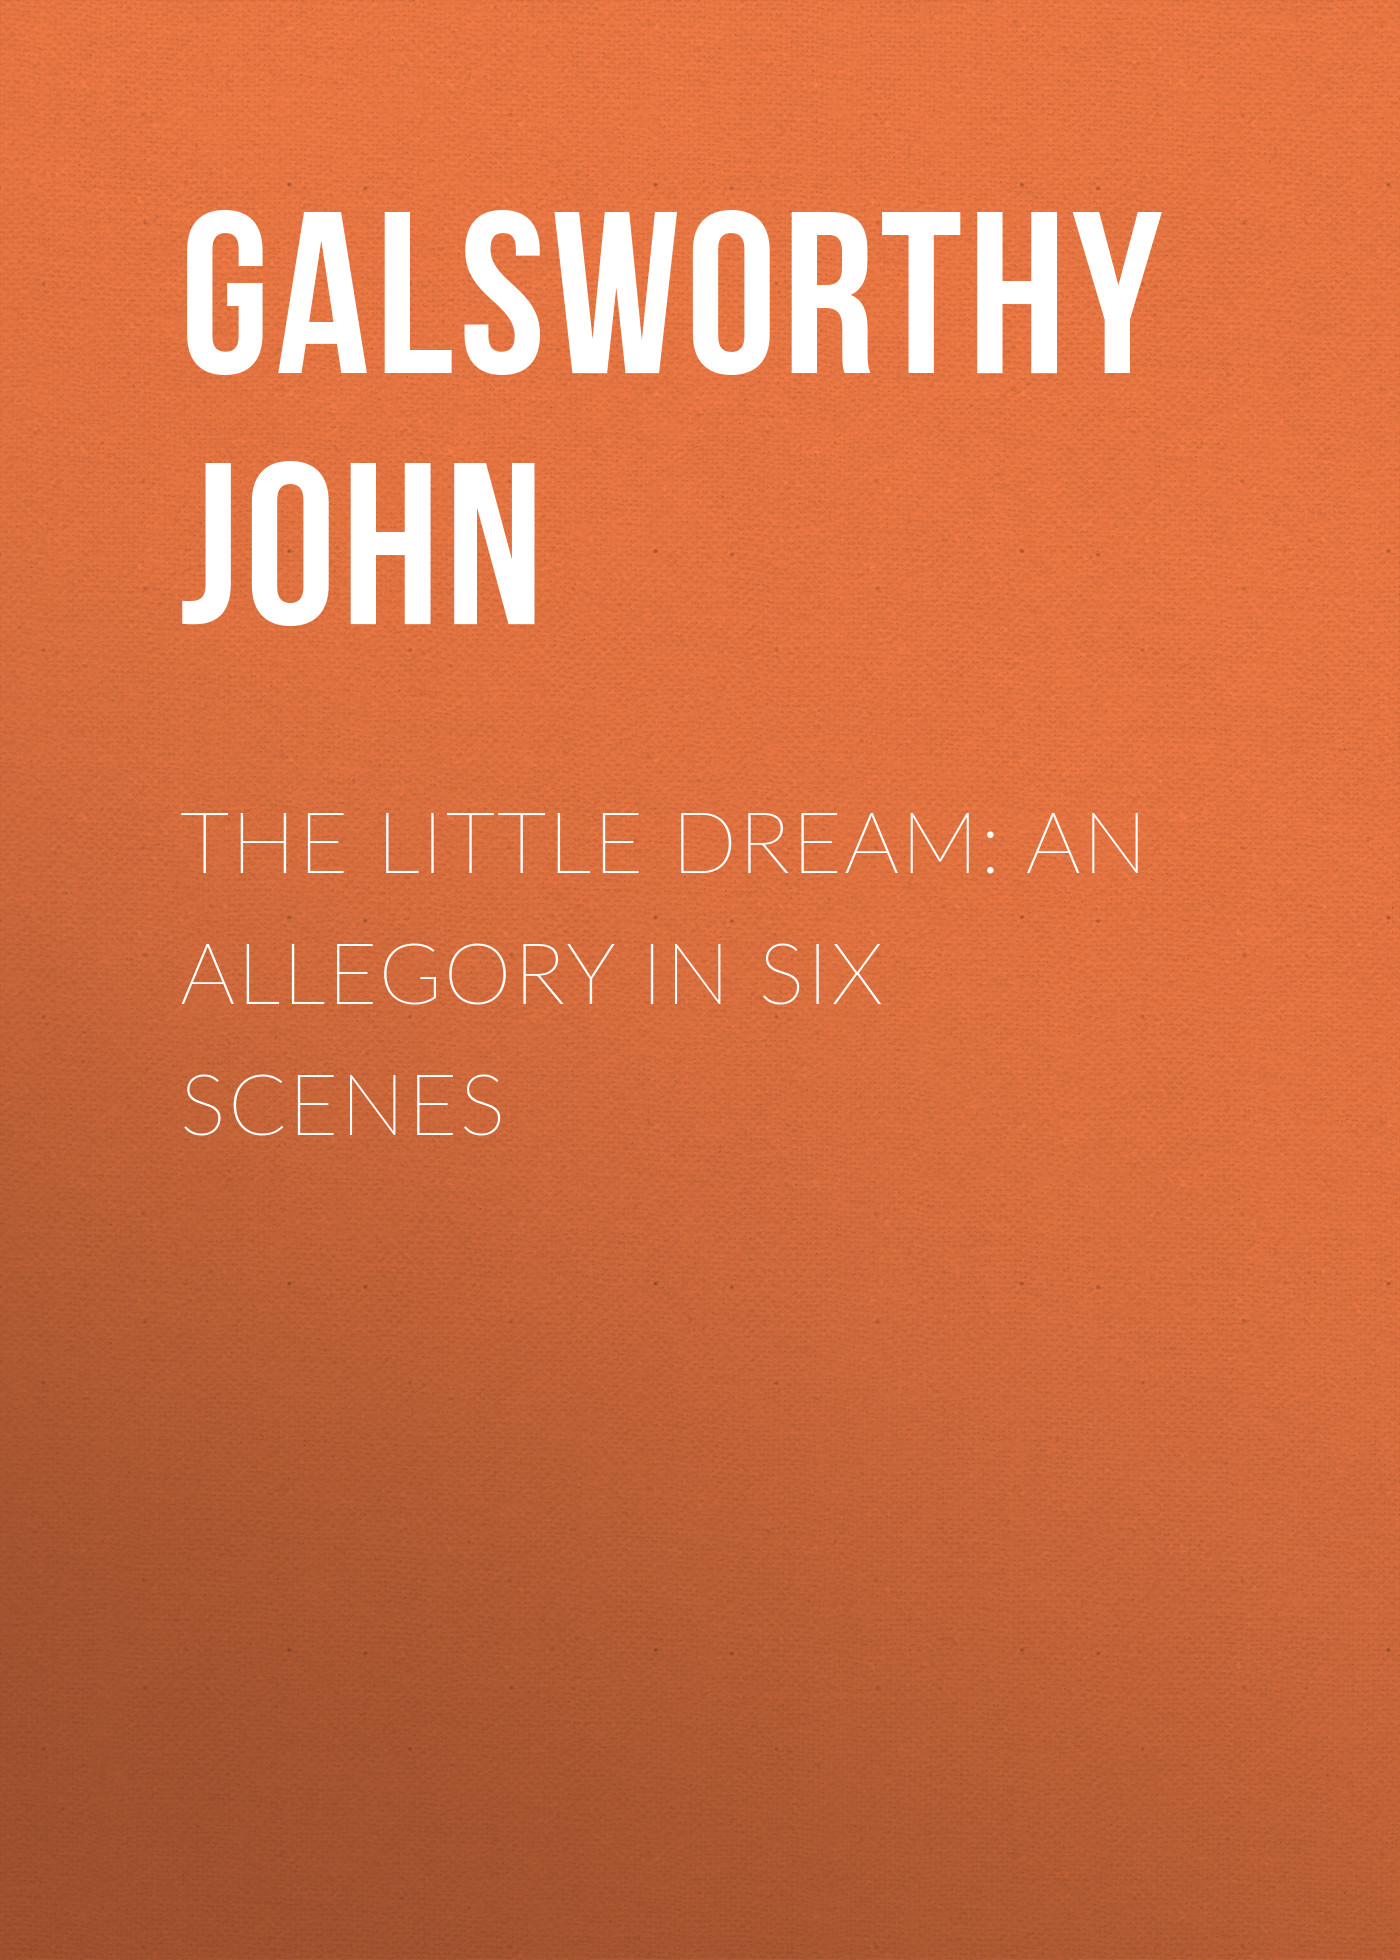 Galsworthy John The Little Dream: An Allegory in Six Scenes